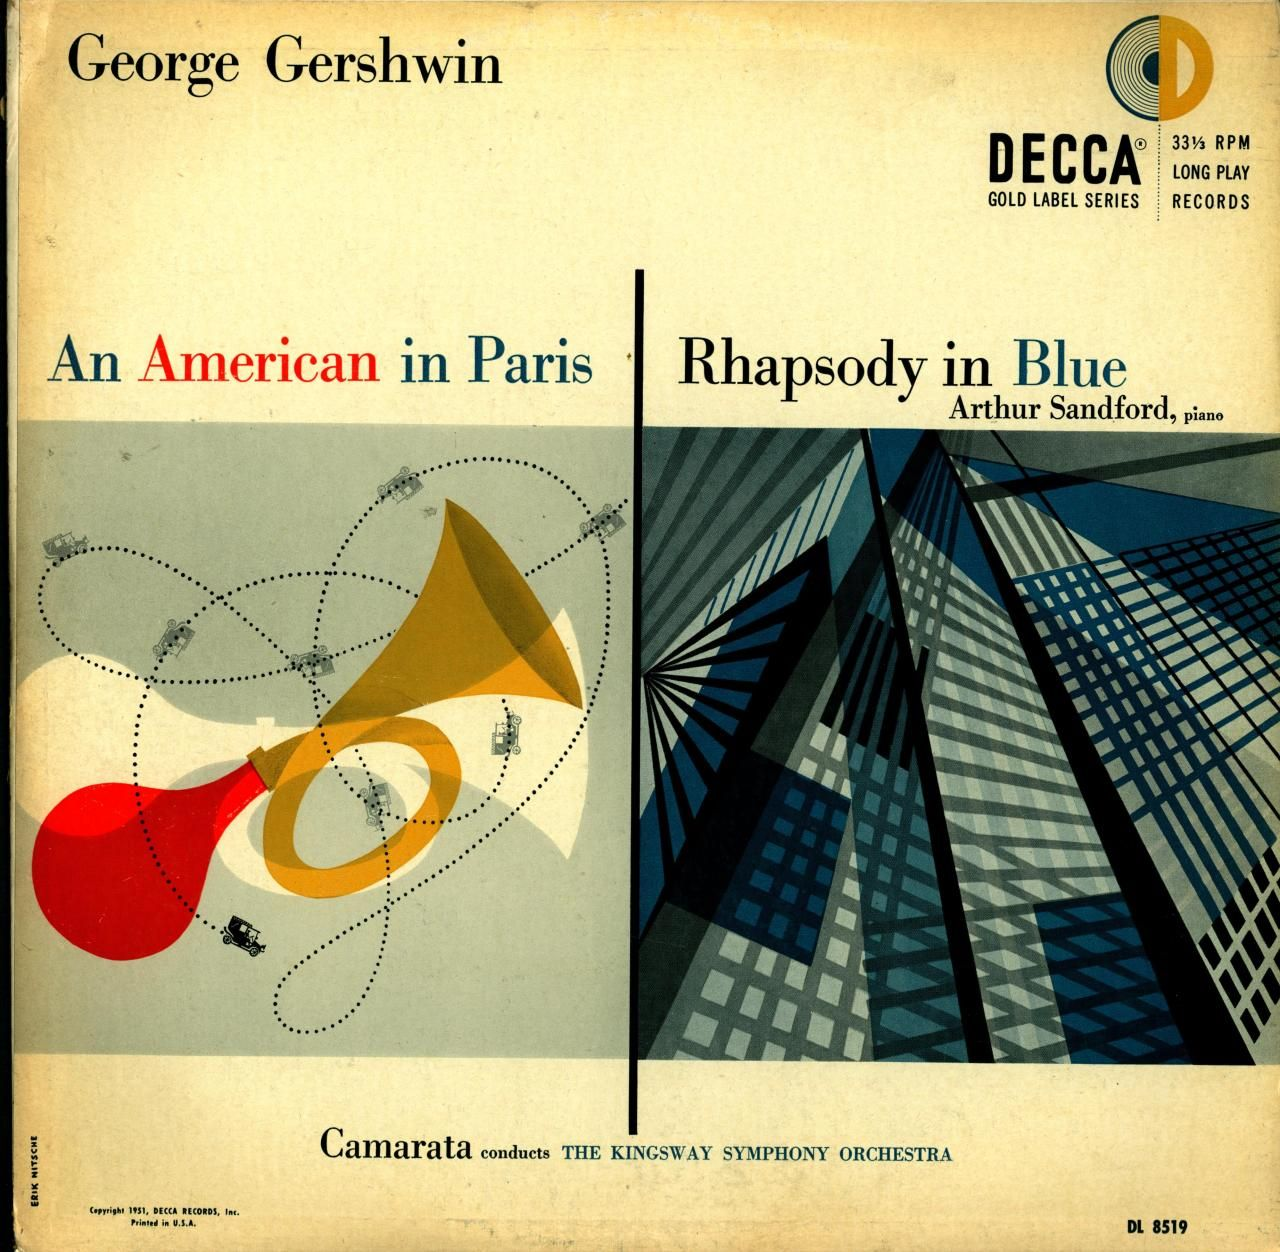 Pin On Classical Music Album Covers